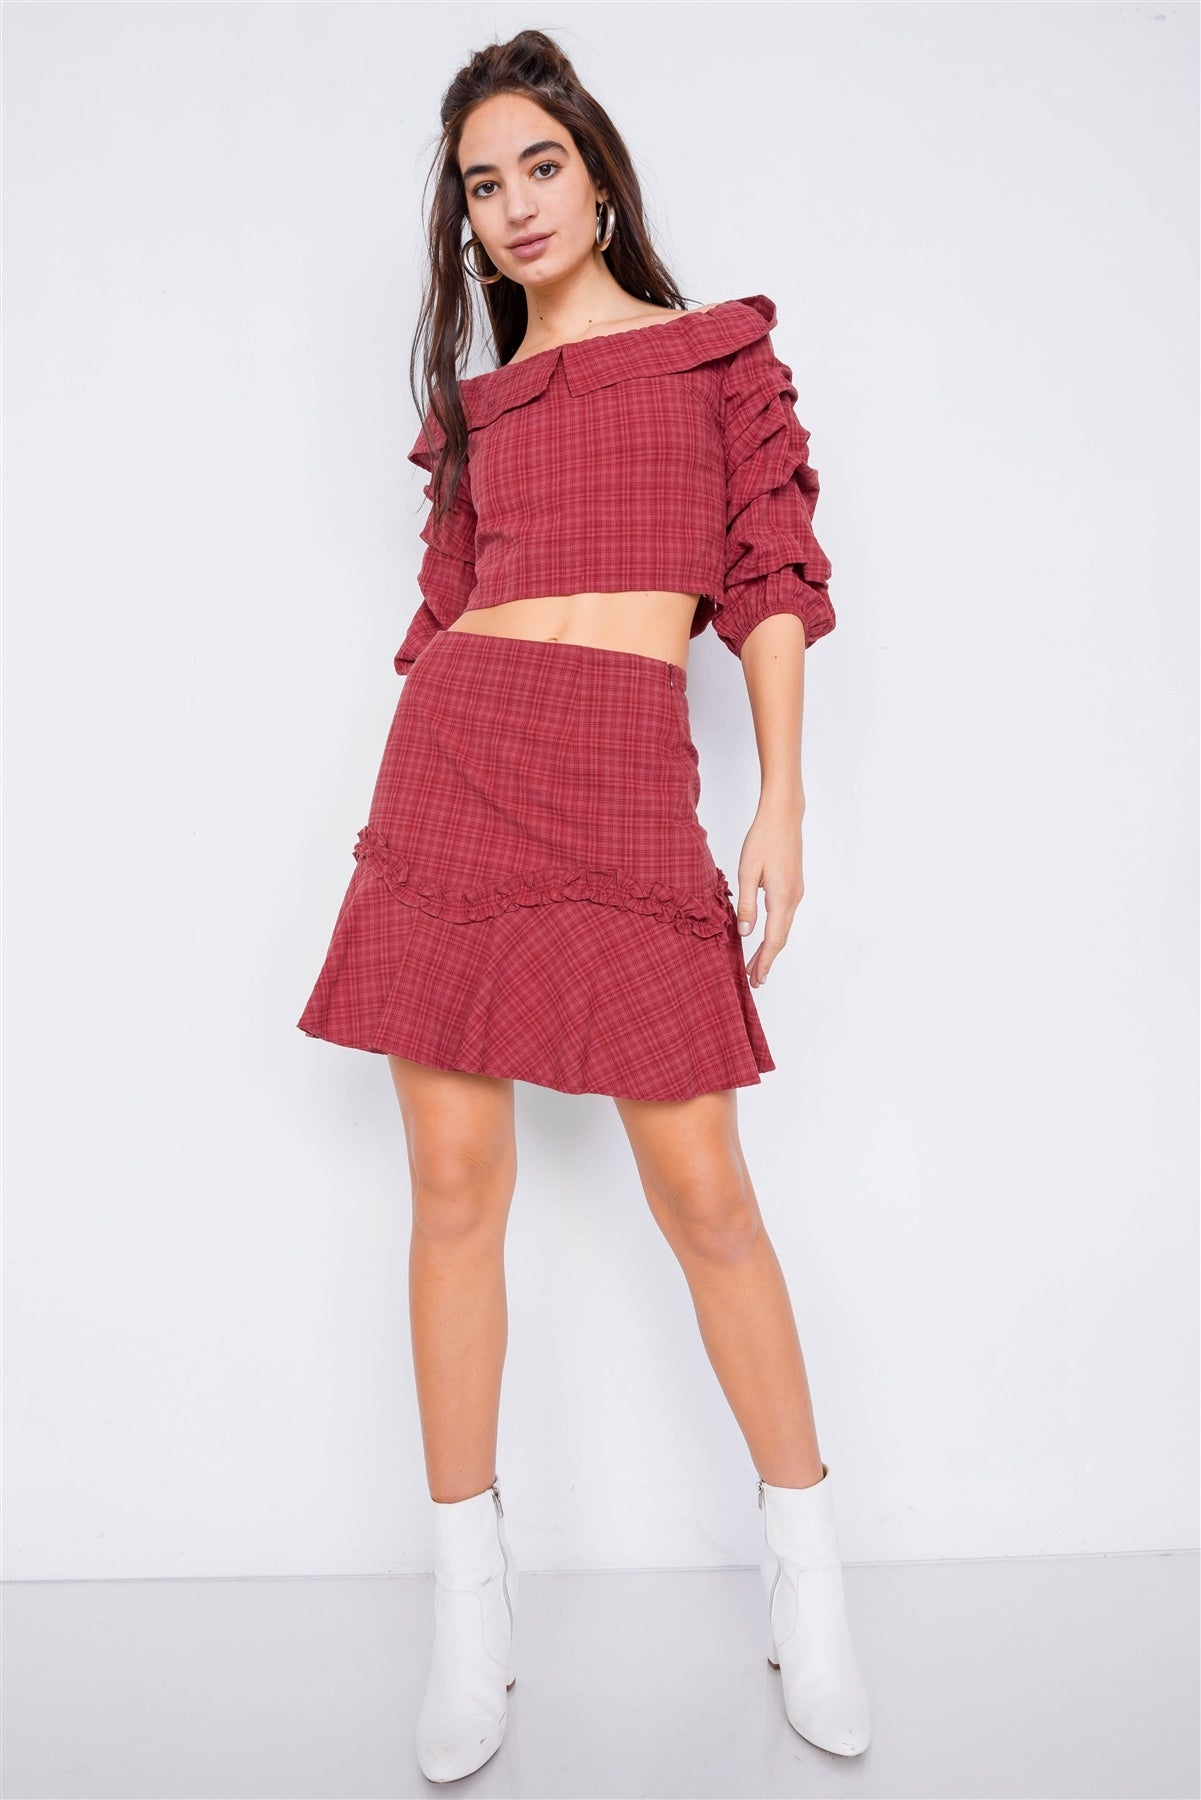 Raspberry Plaid Off-the Shoulder Retro Chic Crop Top & Mini Ruffle Skirt Set